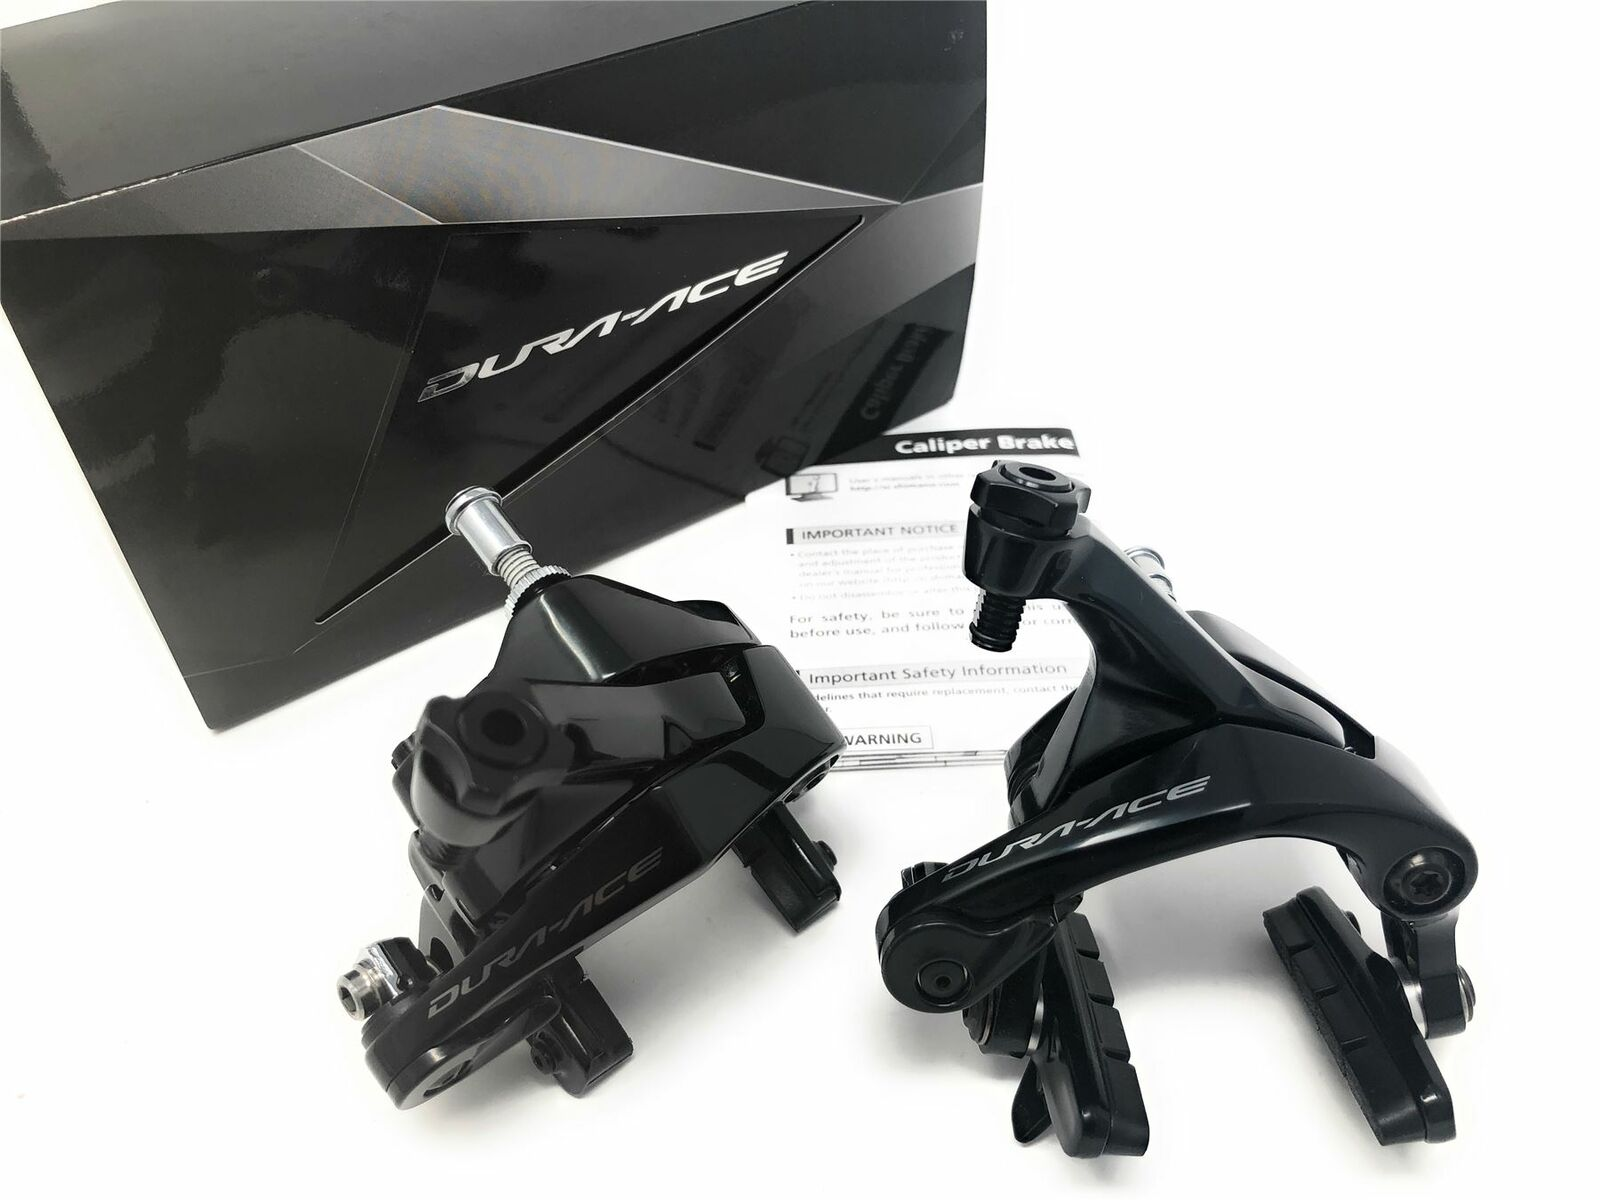 NEW Shimano Dura Ace 11s BR-R9100 IBRR9100I49 SLR Front & Rear Brake Caliper Set